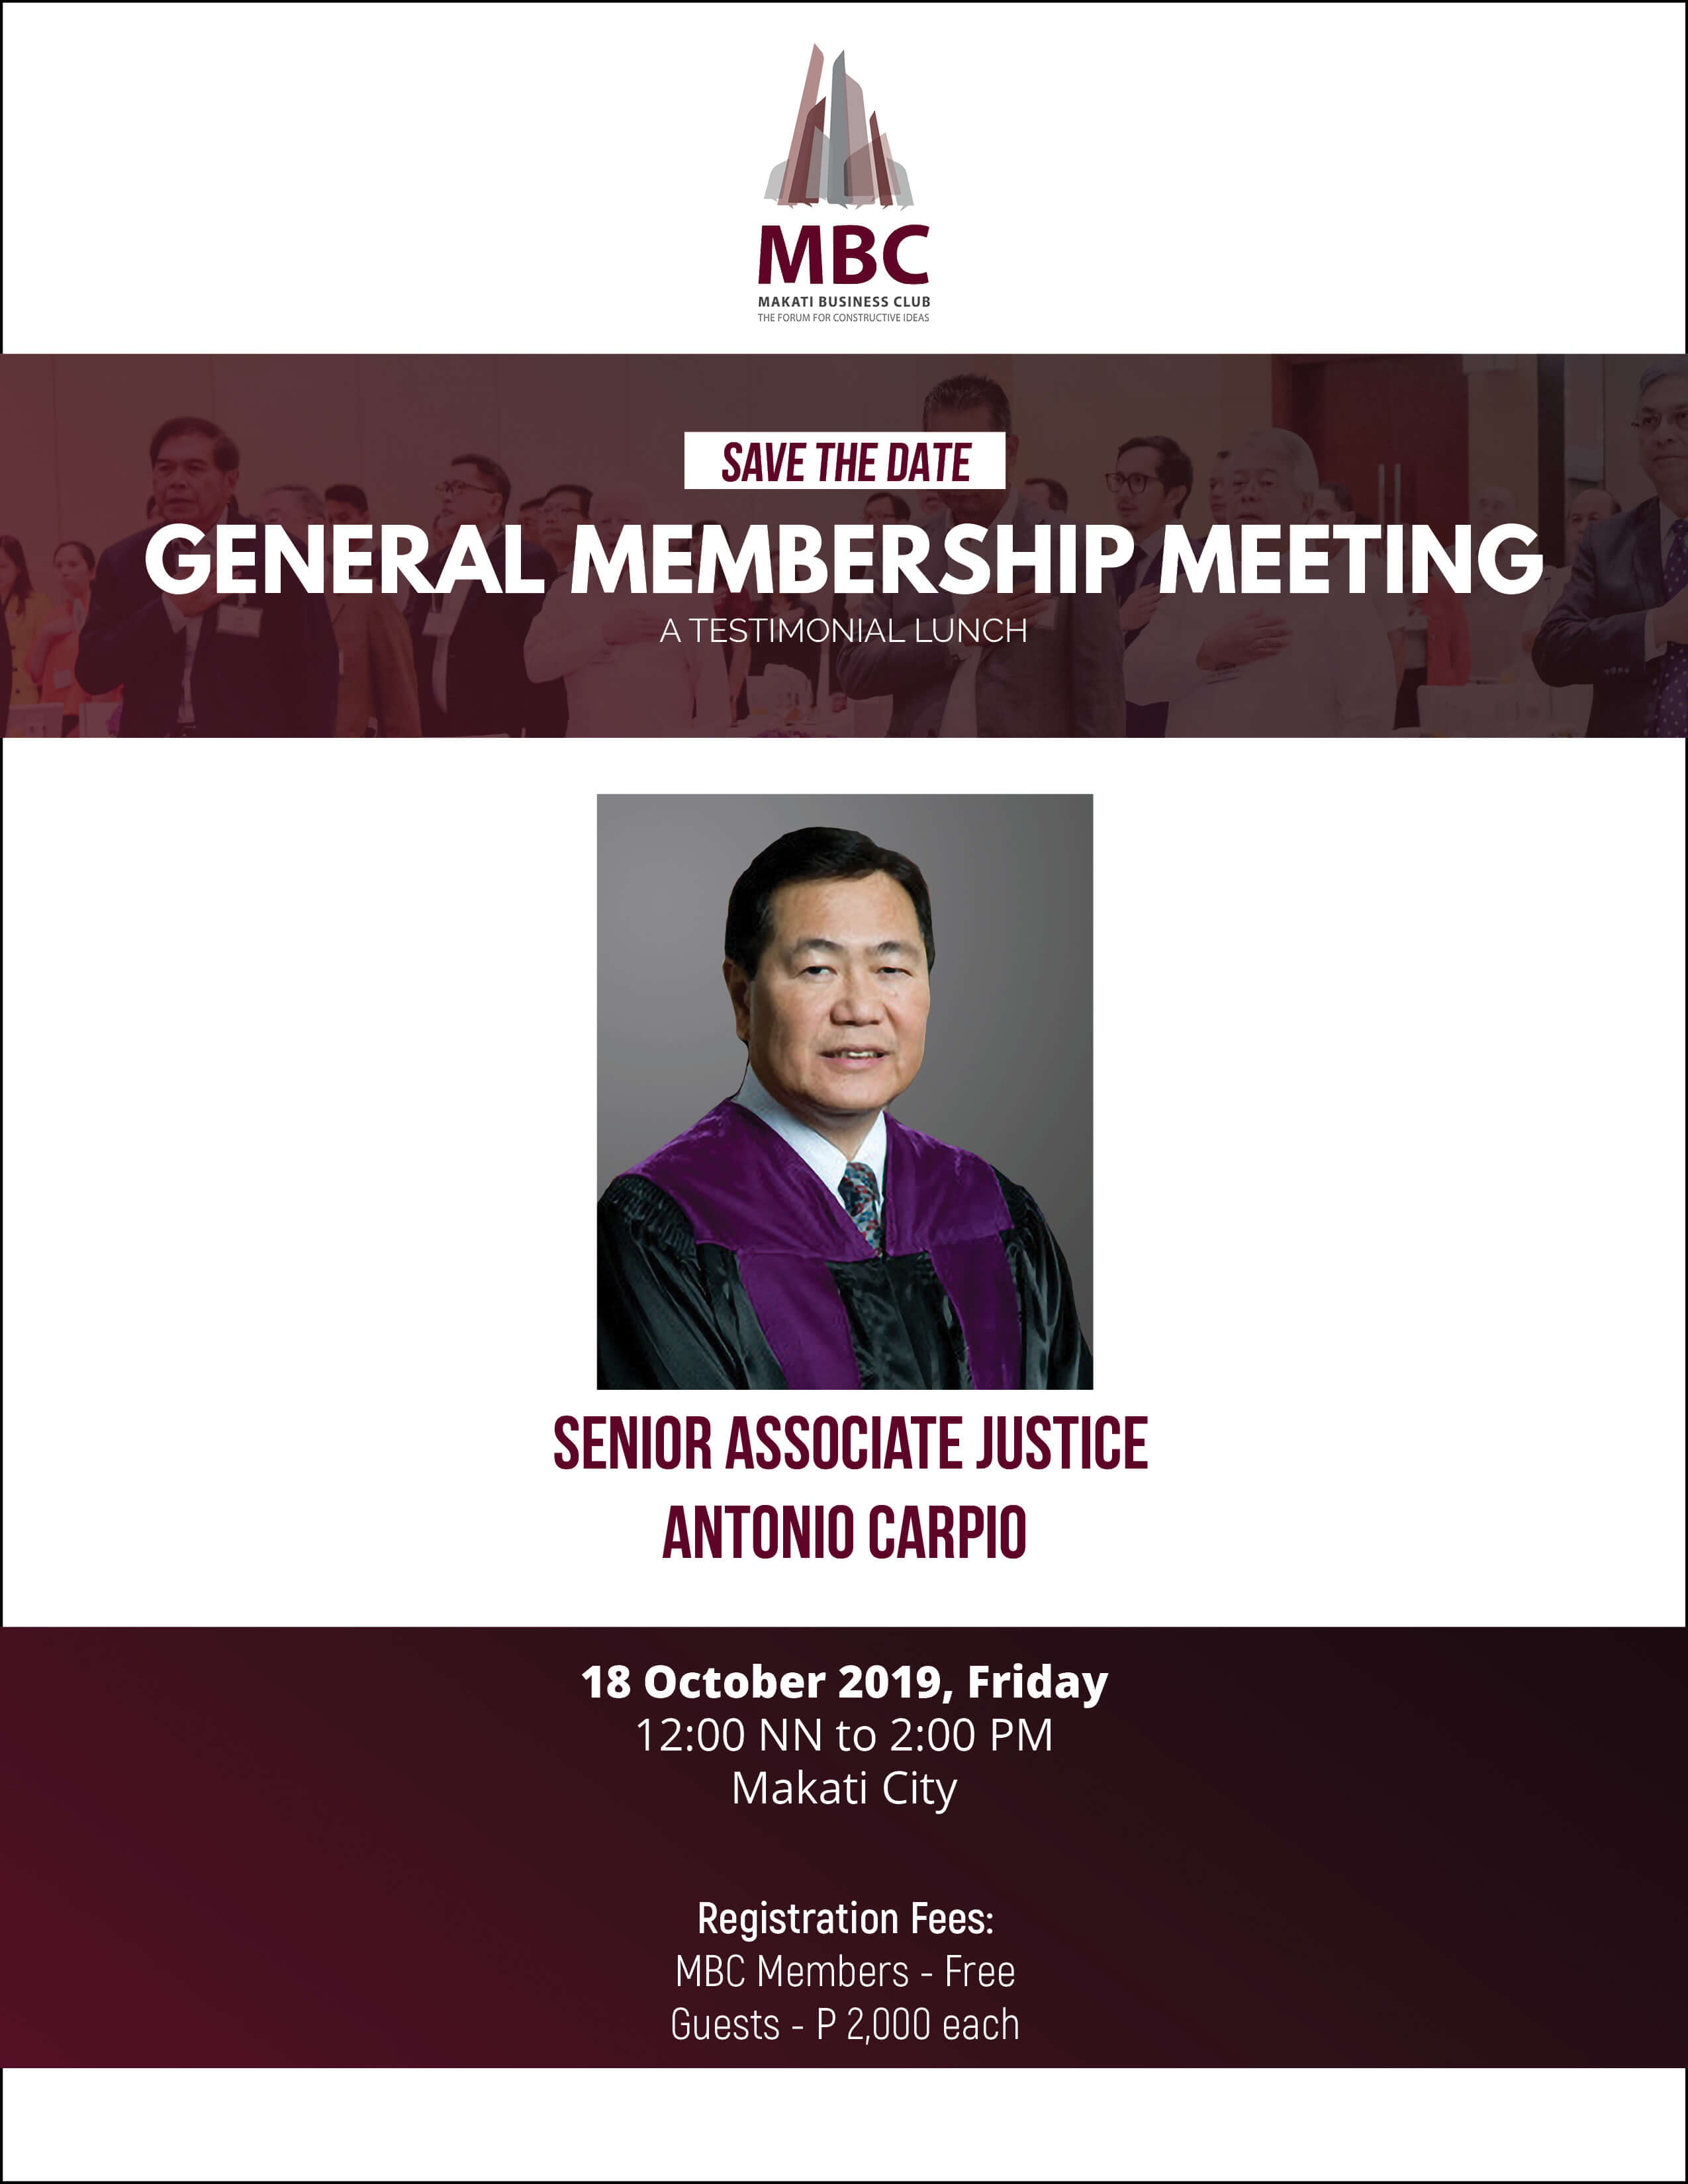 A Testimonial Lunch with Senior Associate Justice Antonio Carpio